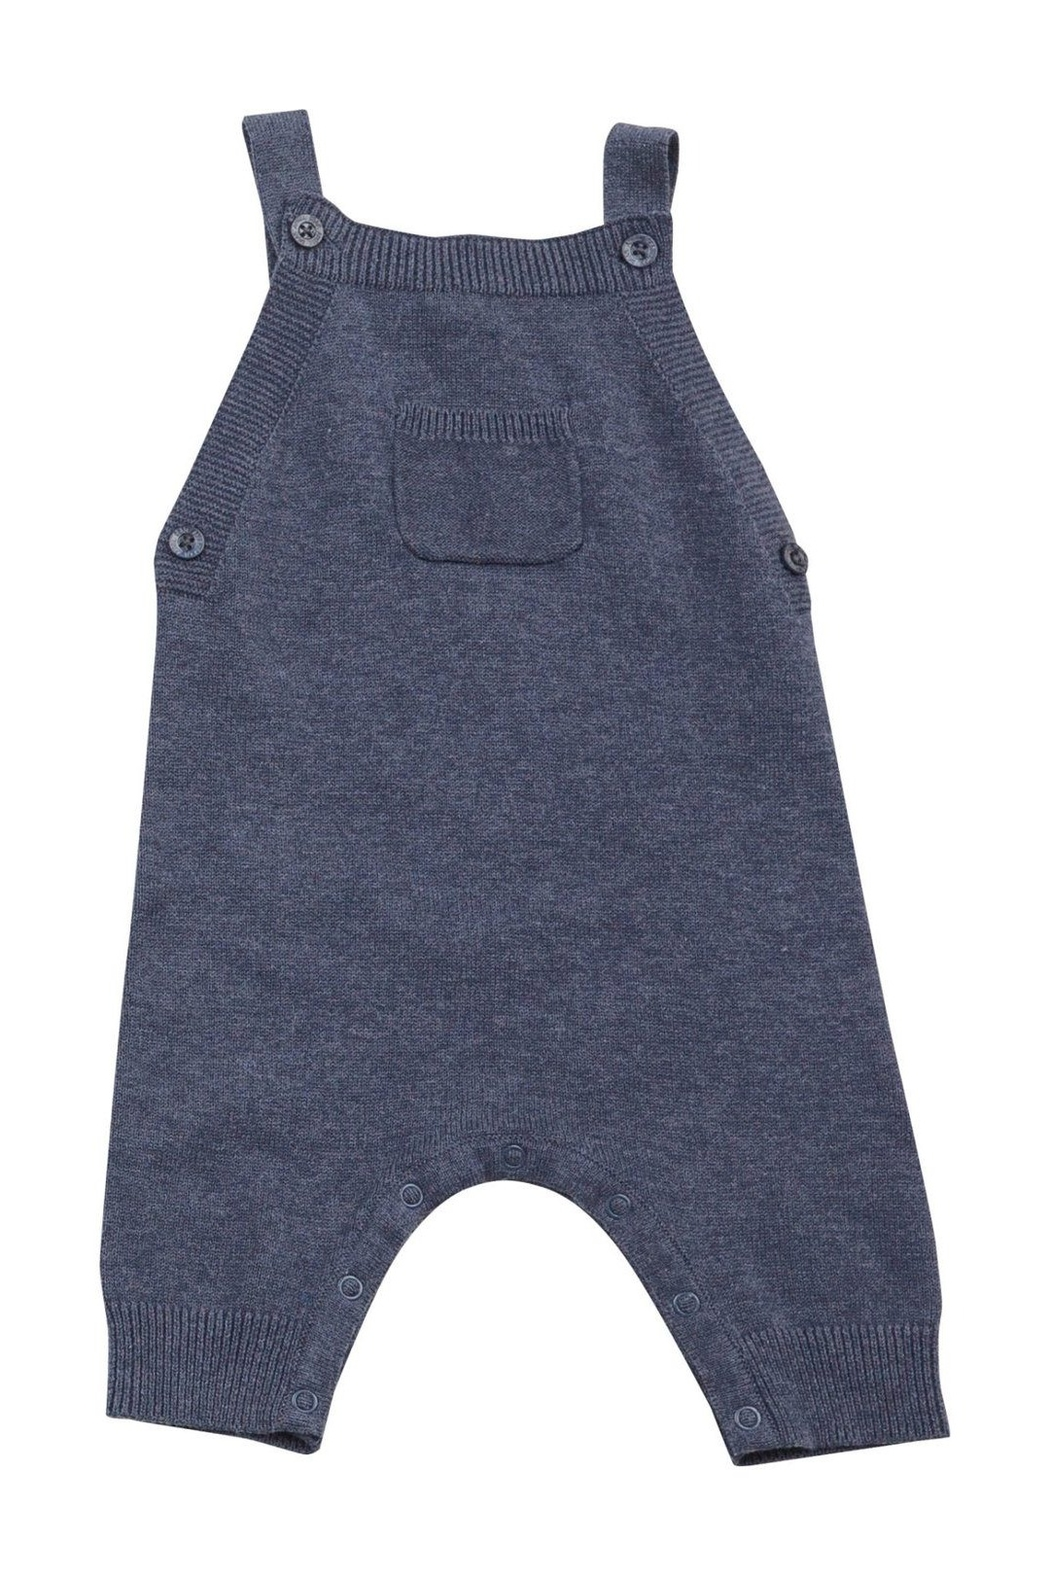 Angel Dear Knit Overall - Front Cropped Image